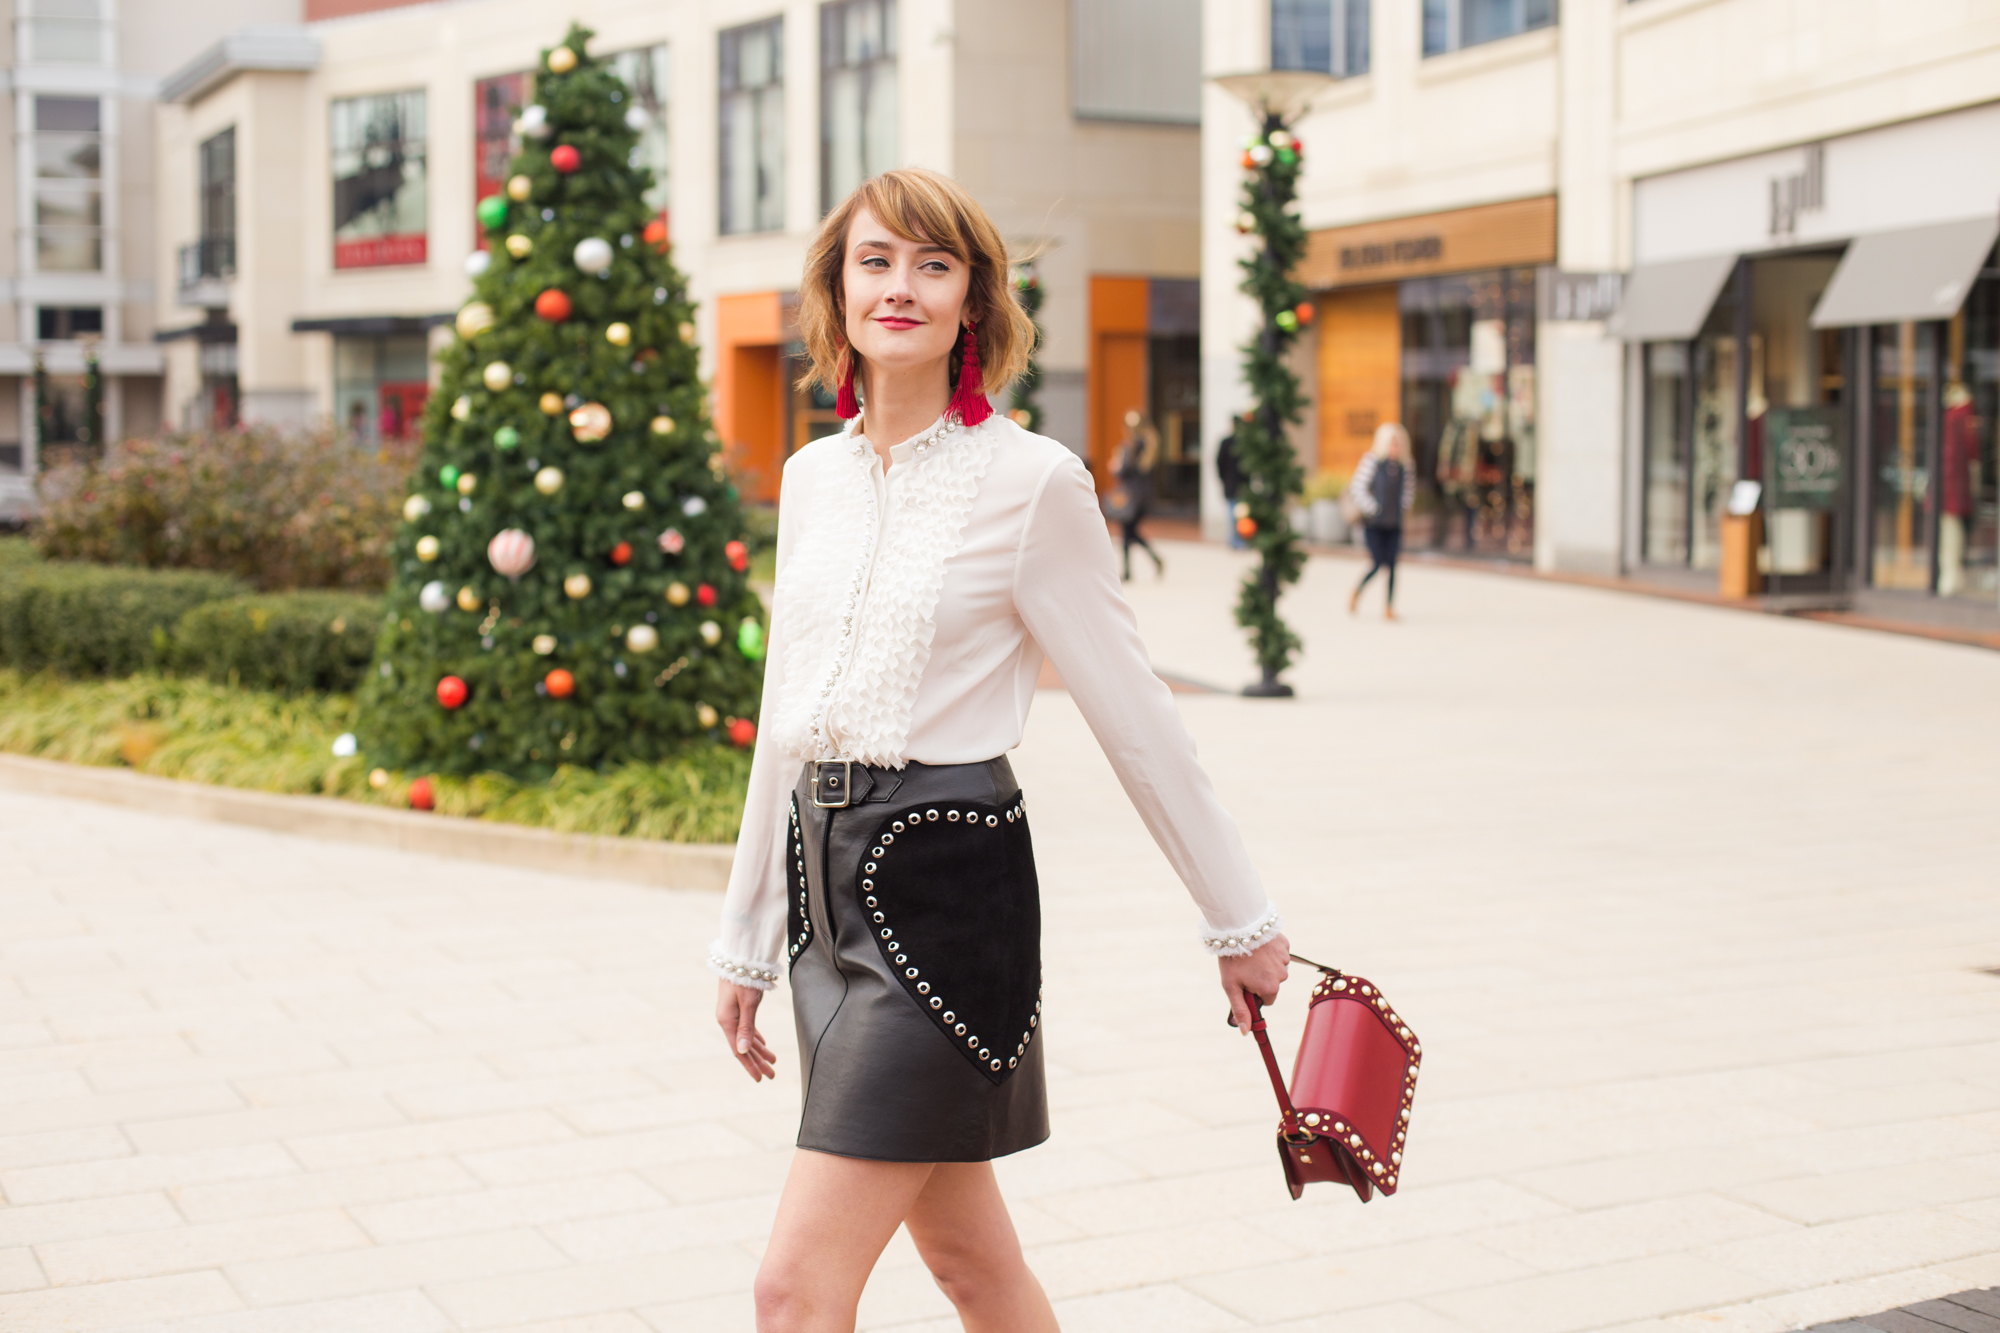 Alice + Olivia pearl-embellished blouse, Maje leather skirt, and Sandro bag